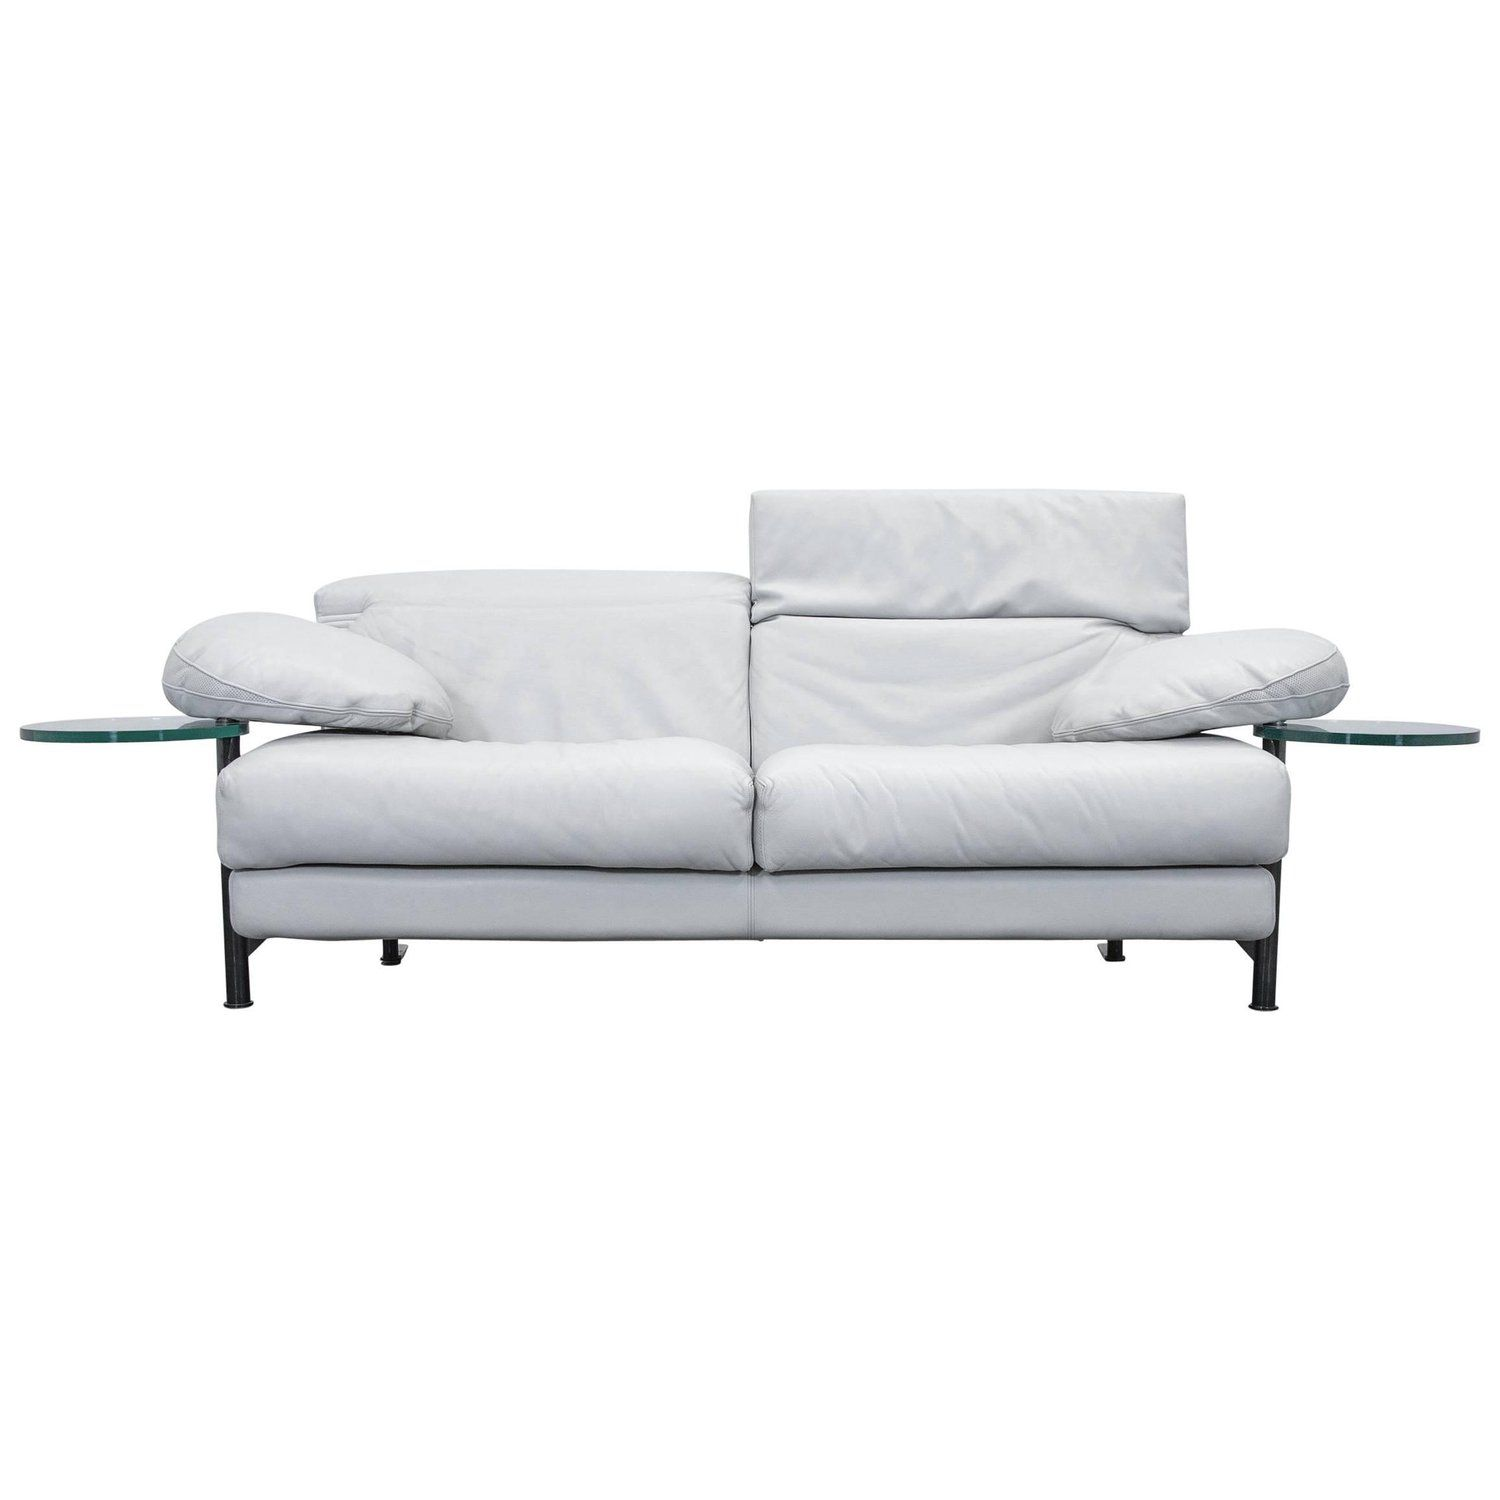 b b italia arca paolo piva designer sofa grey leather three seat rh pinterest com